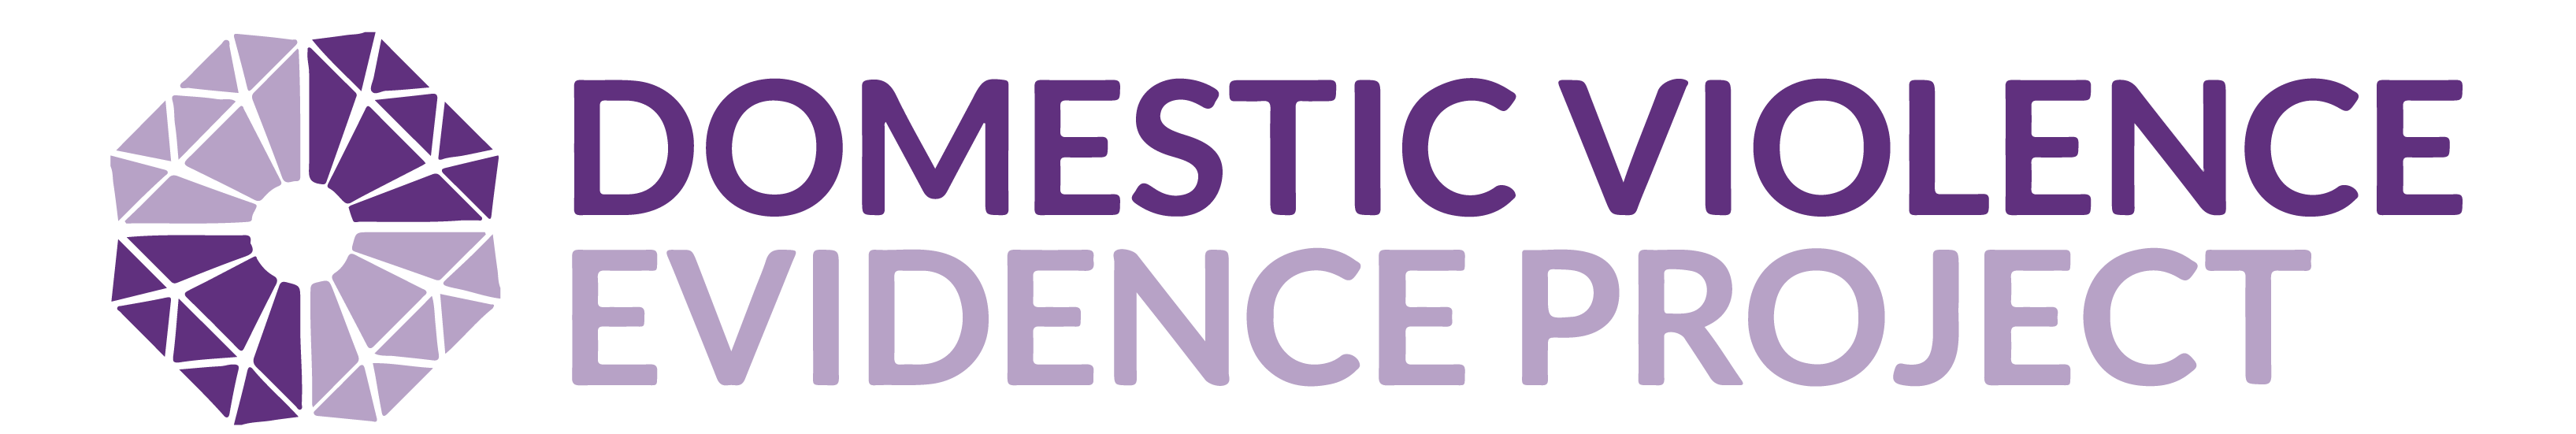 Domestic Violence Evidence Project logo